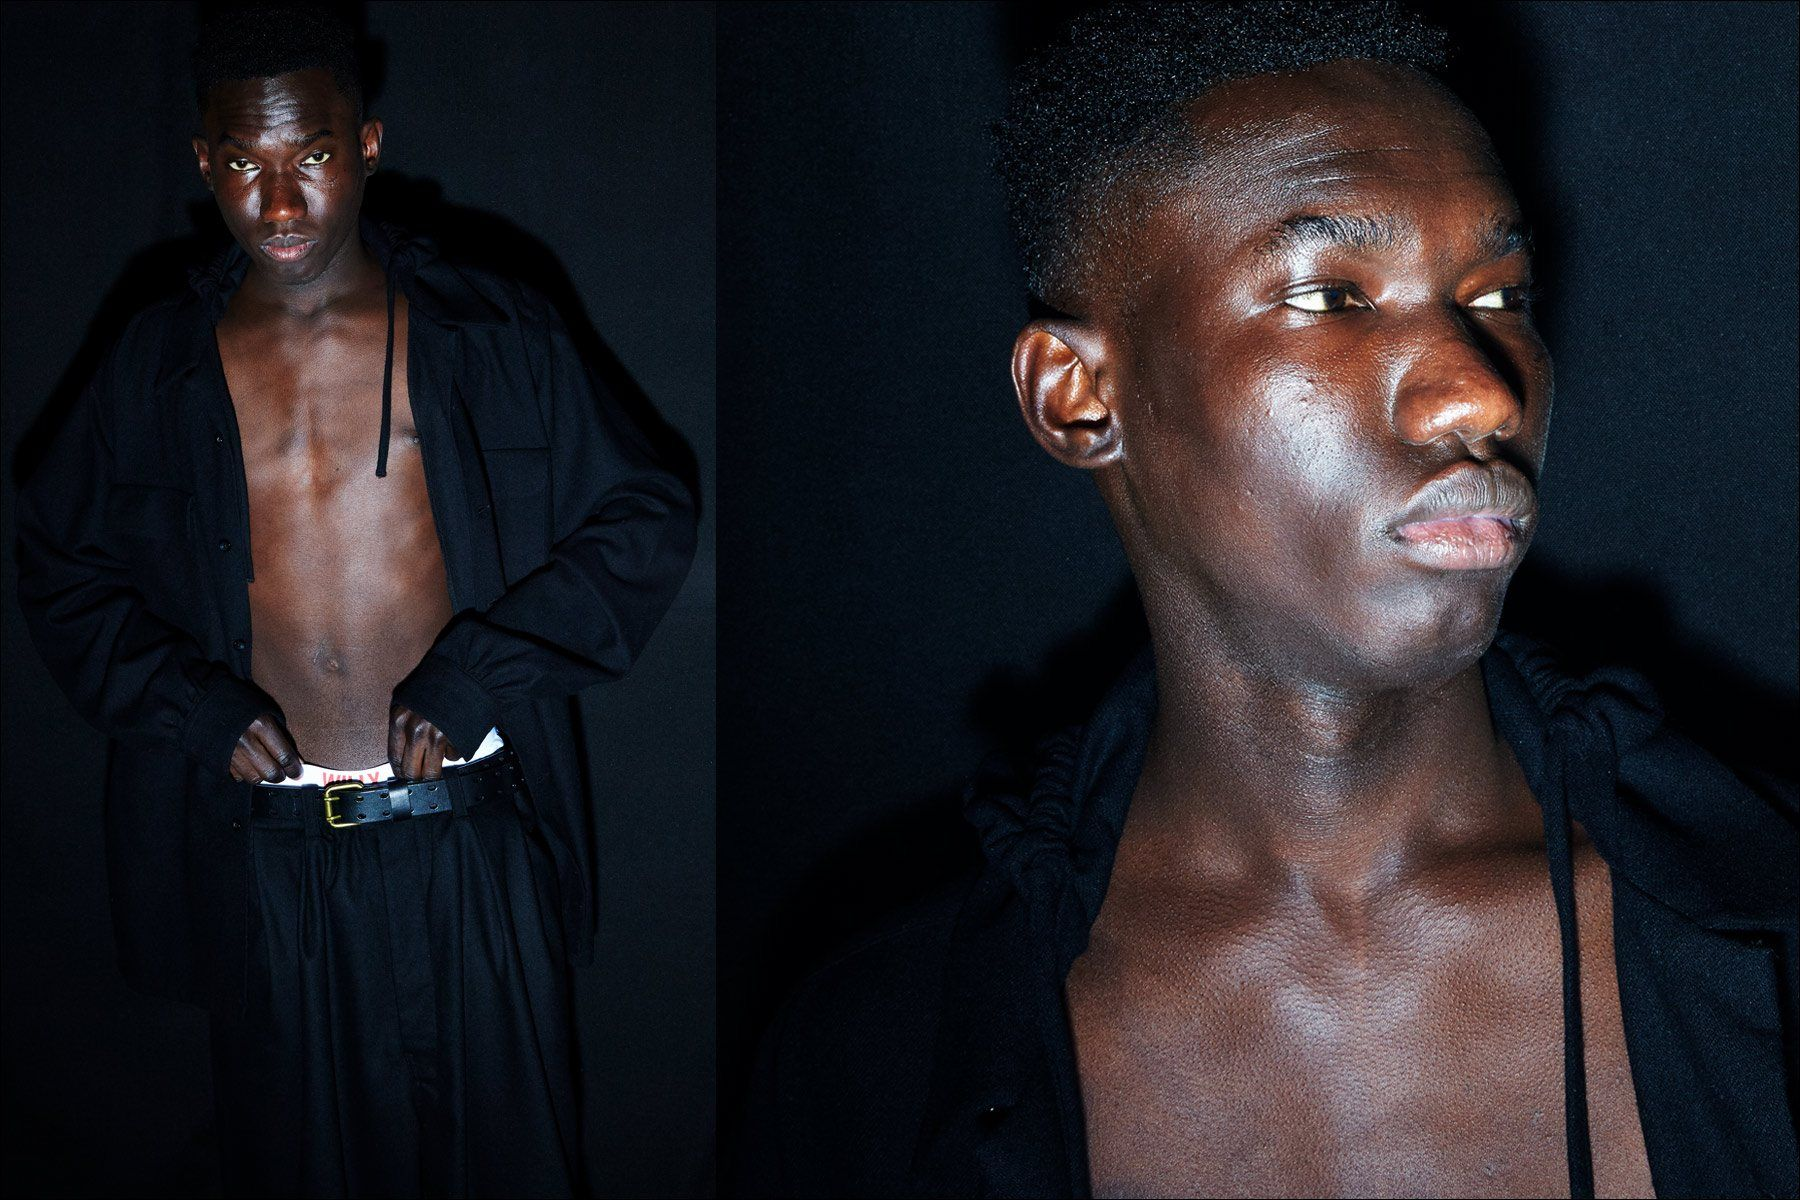 A model poses backstage at the Willy Chavarria menswear show for Fall 2018. Photographs by Alexander Thompson for Ponyboy magazine.